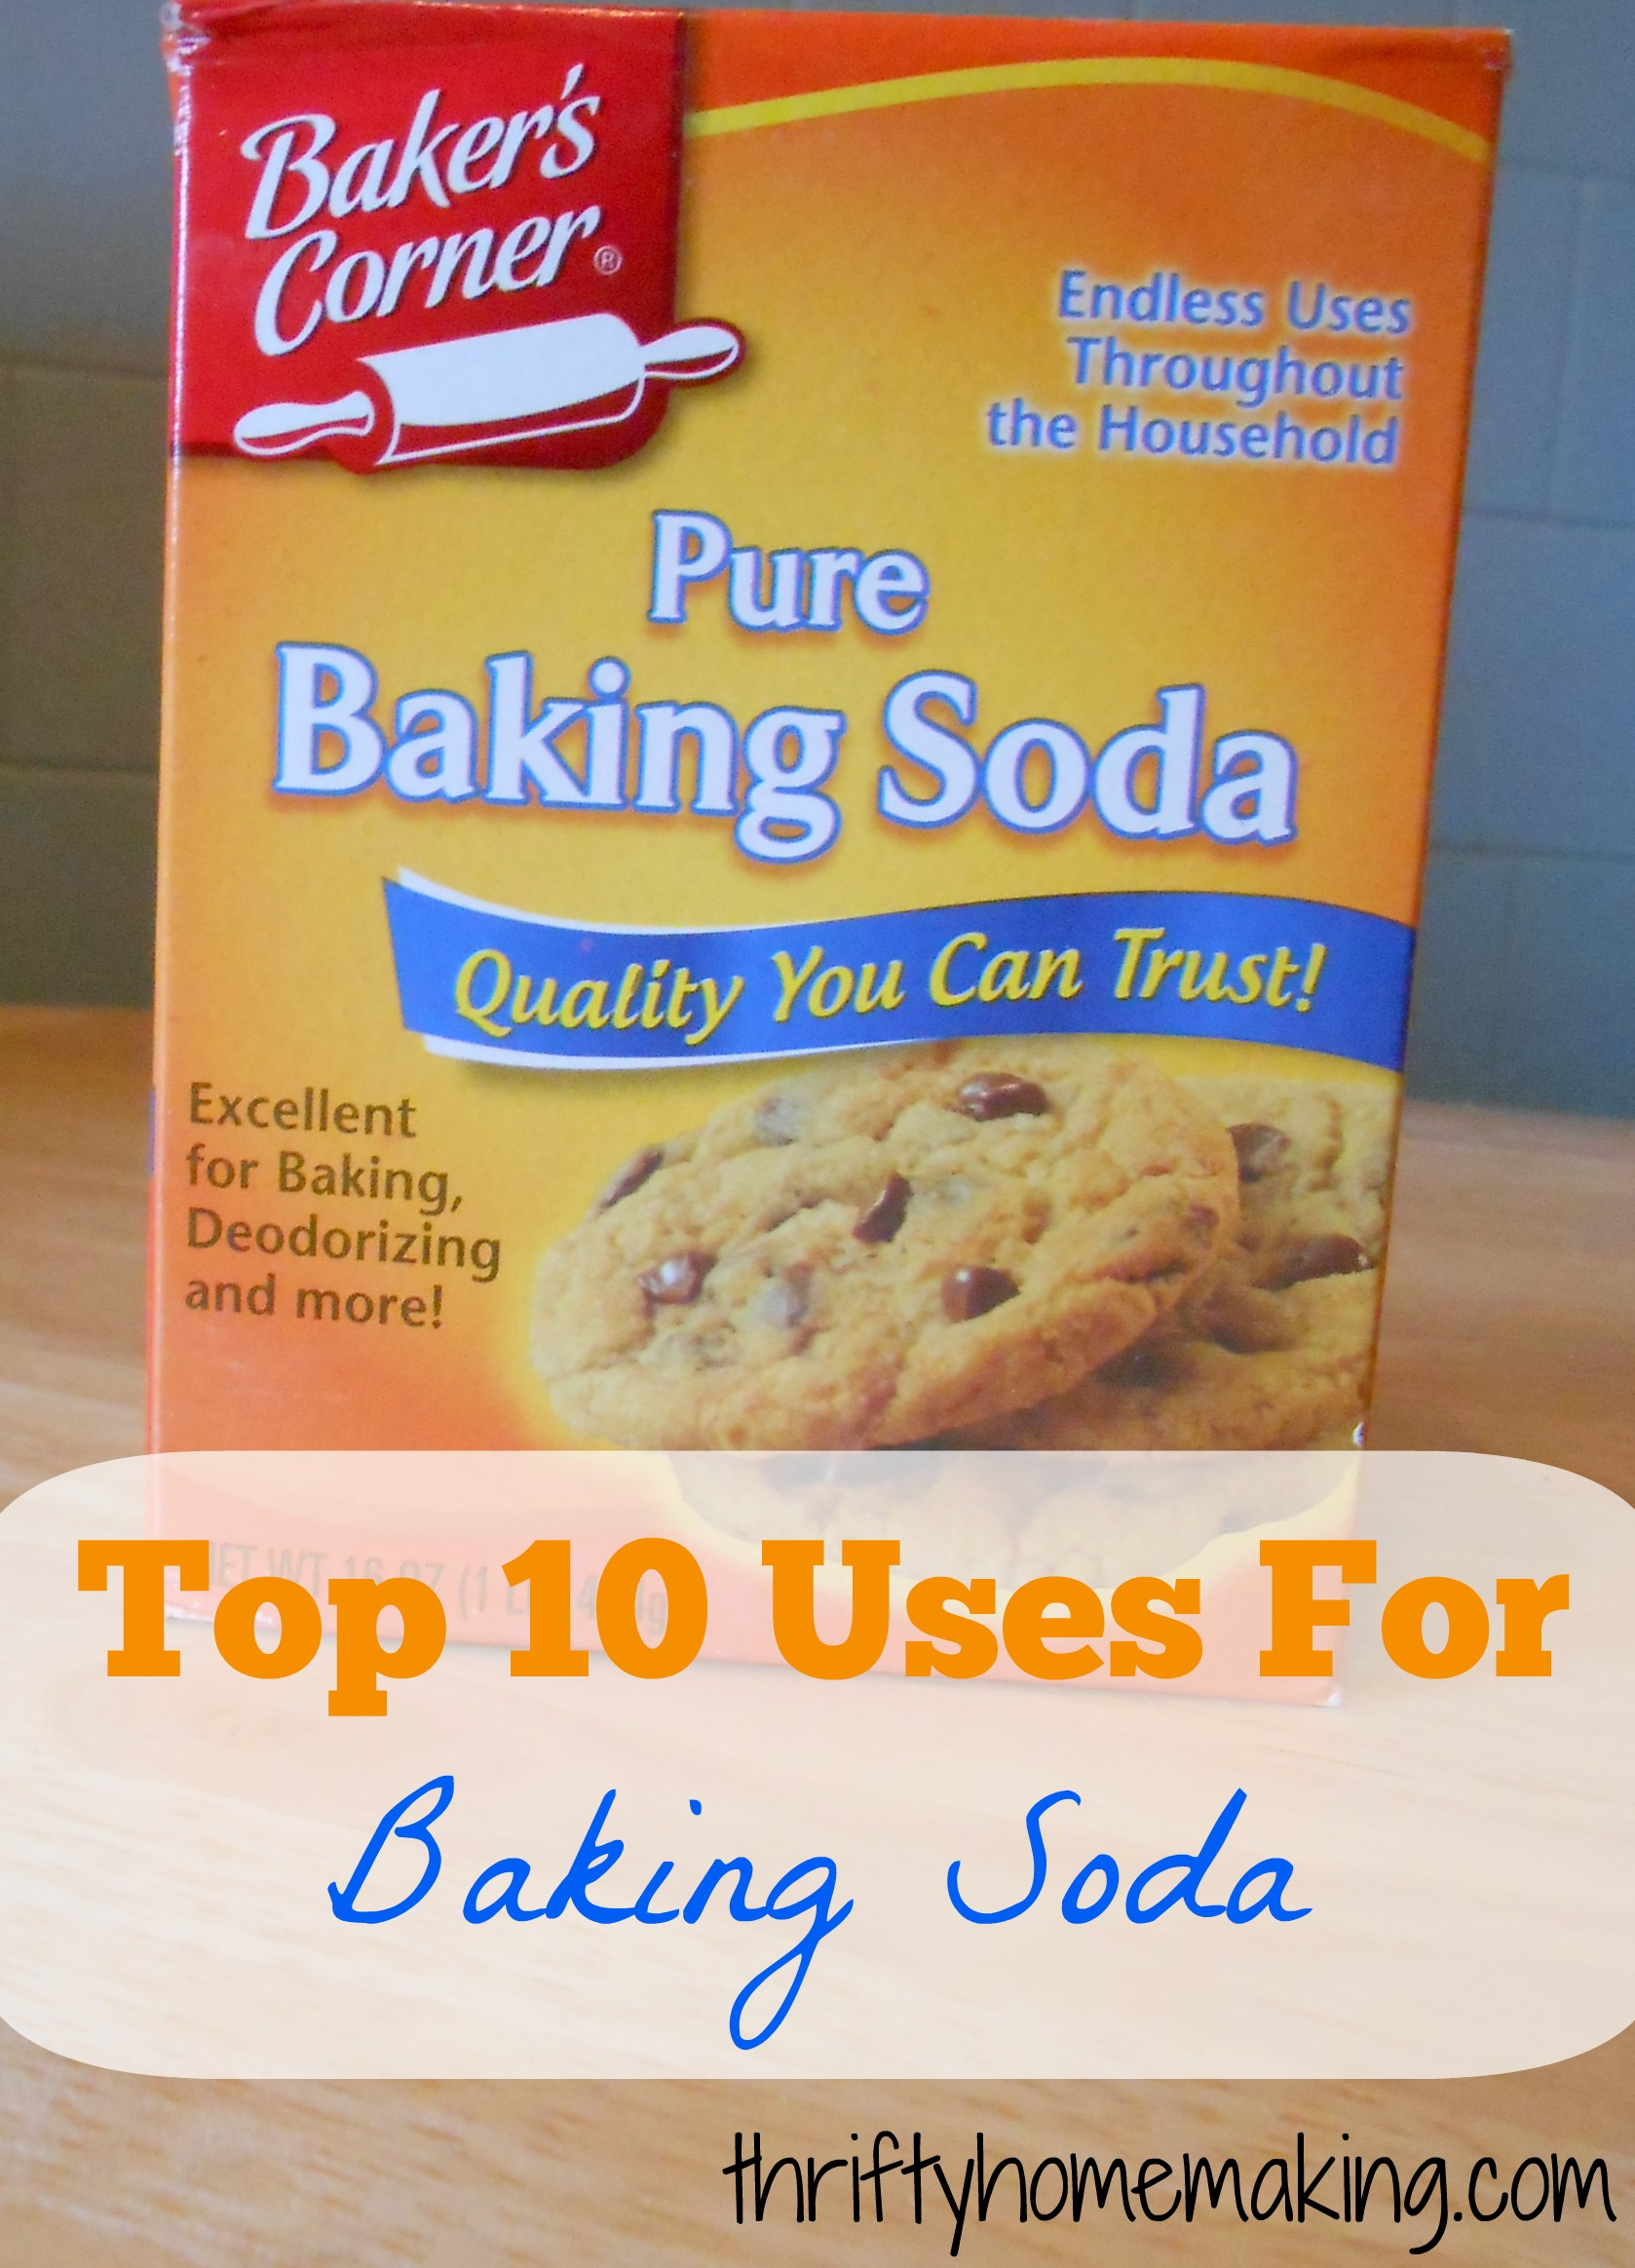 Top 10 Uses for Baking Soda